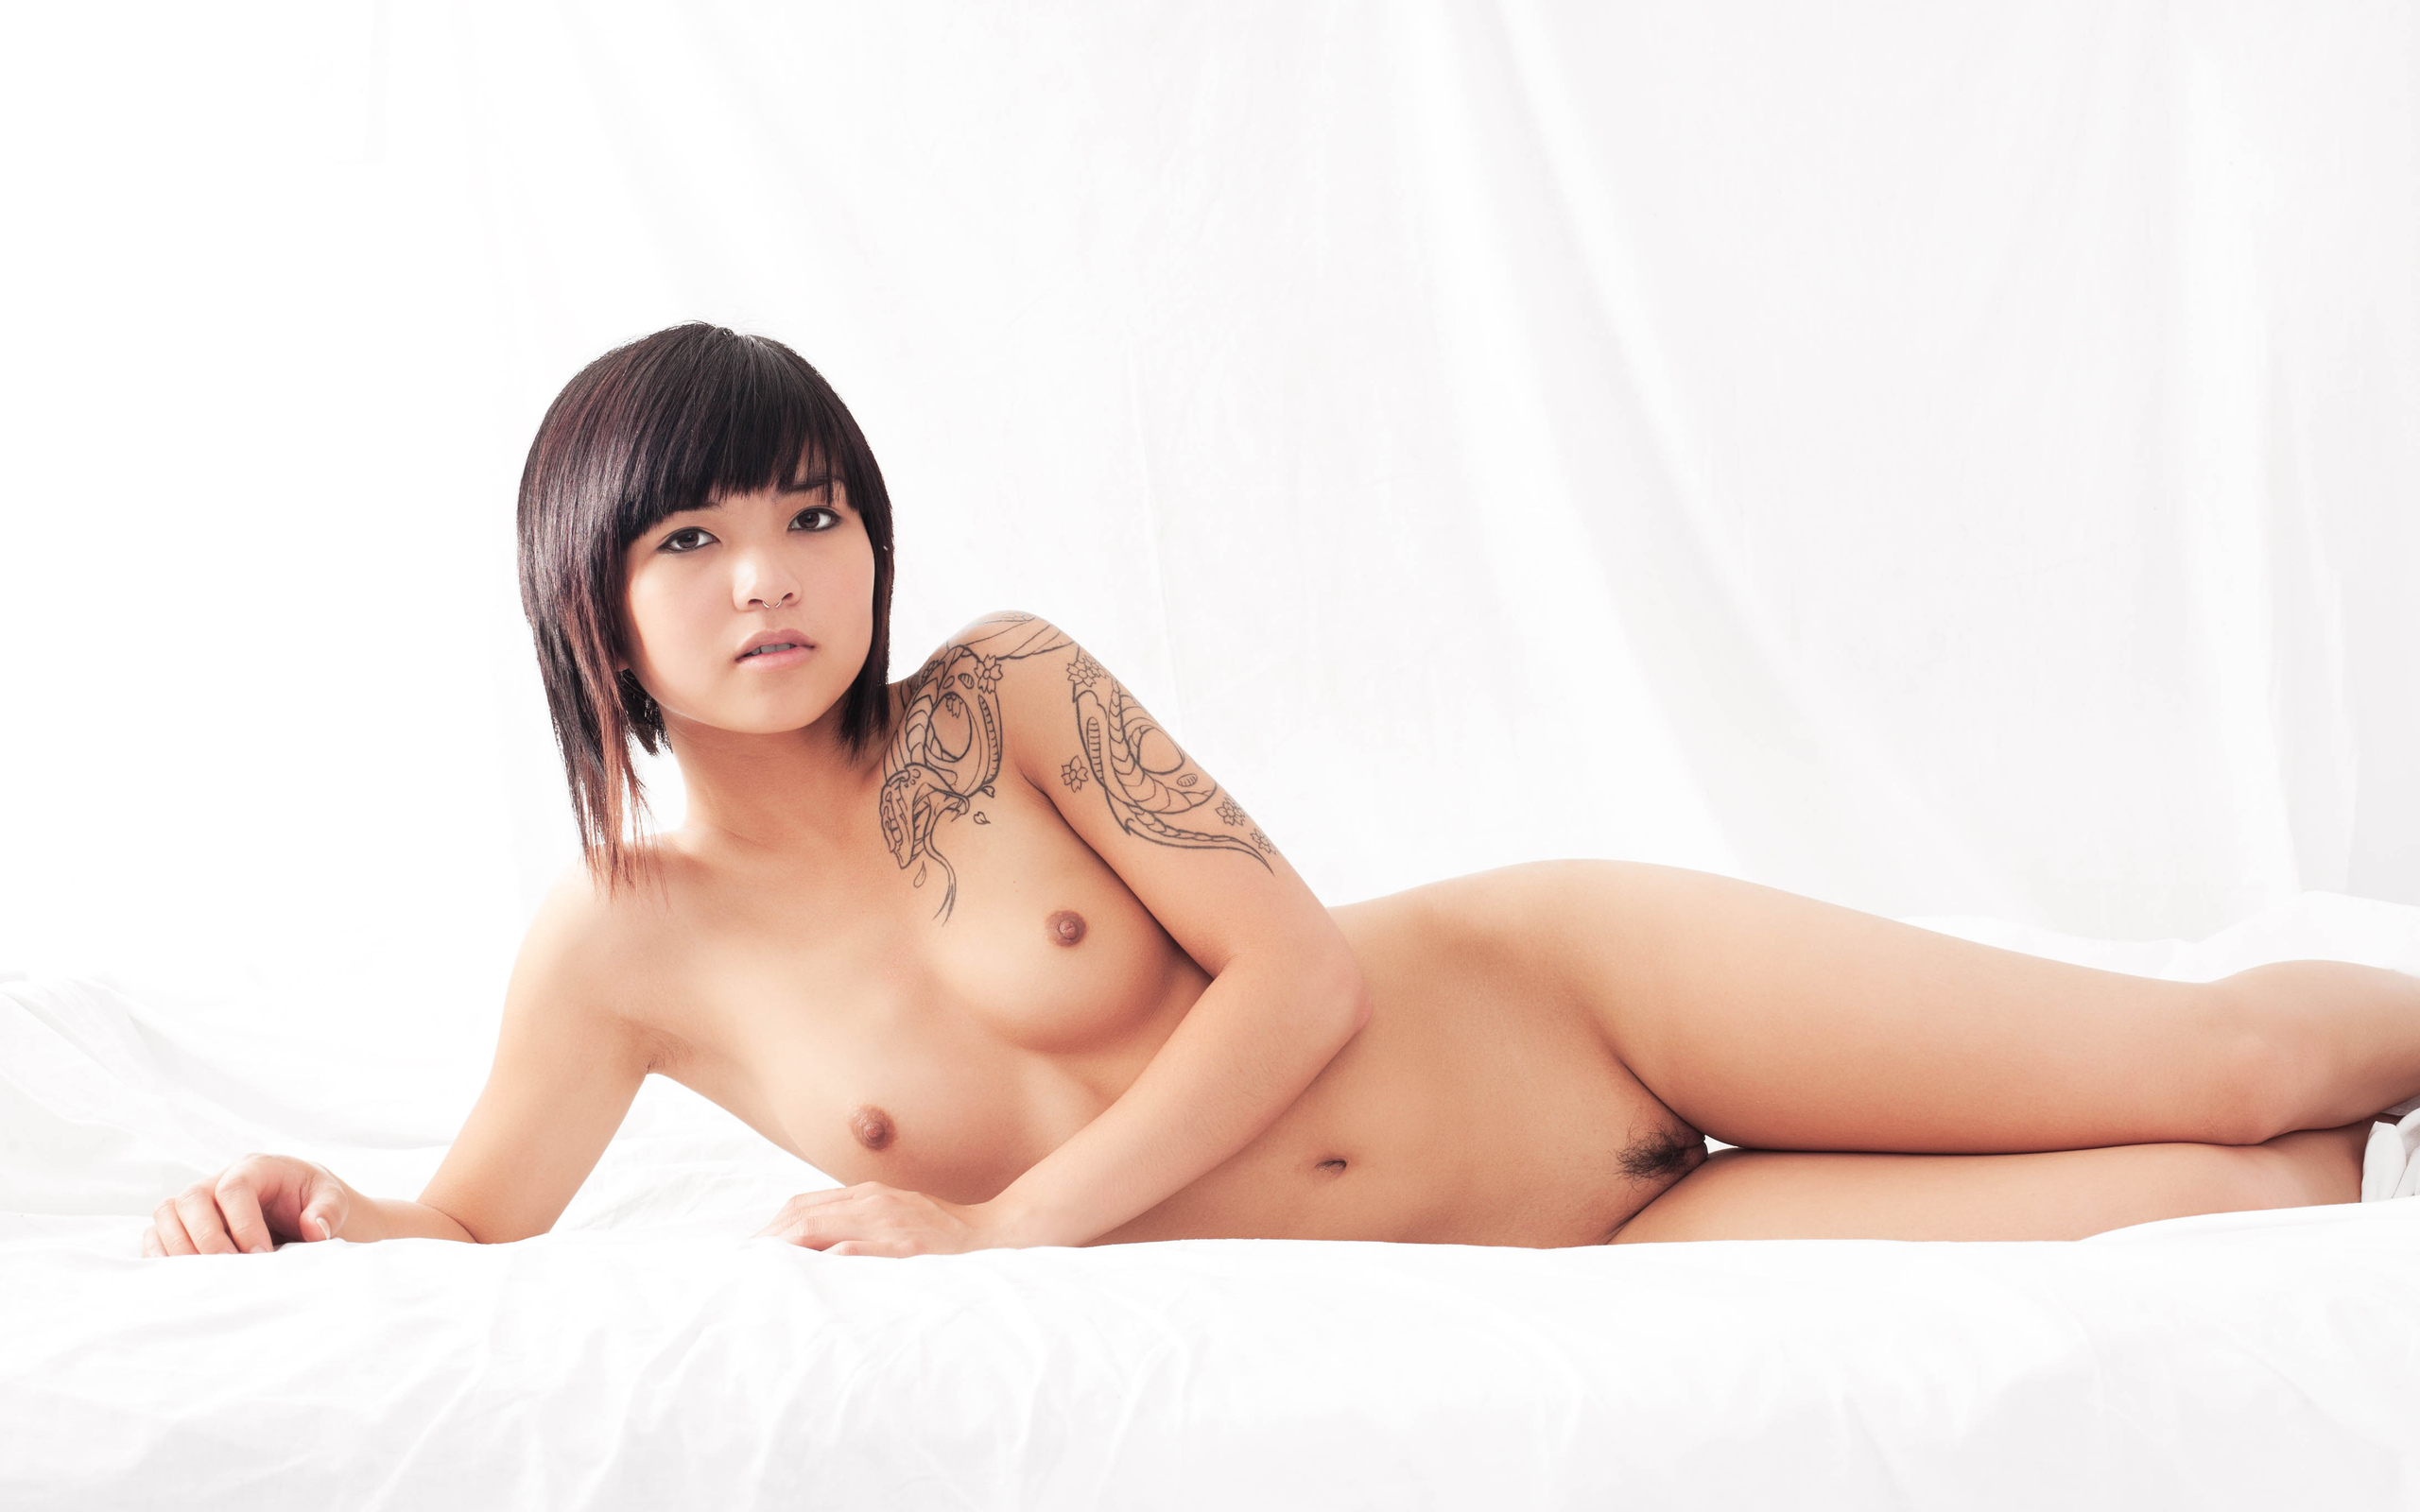 erotic-taiwan-girl-guys-naked-shower-spytures